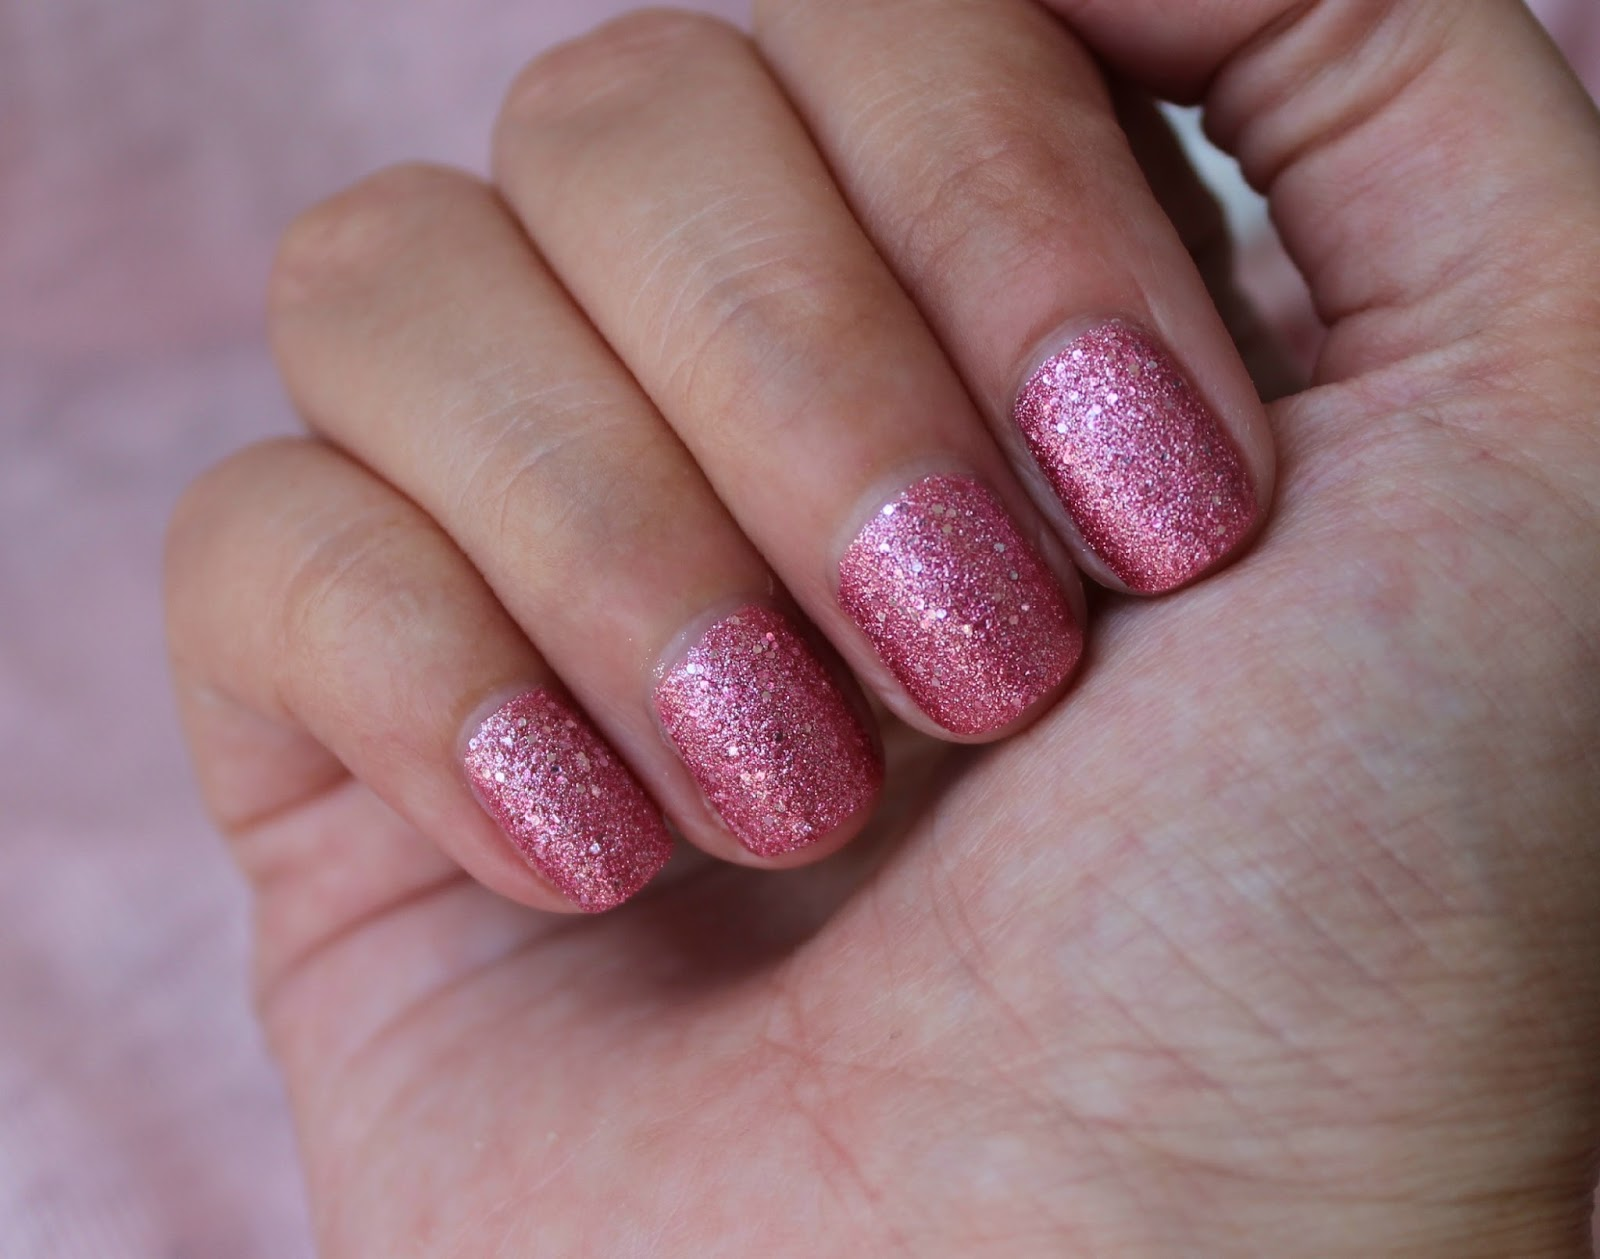 kirschbl te 39 s beauty lifestyle blog aus sterreich nails of the day pinky glitzy. Black Bedroom Furniture Sets. Home Design Ideas